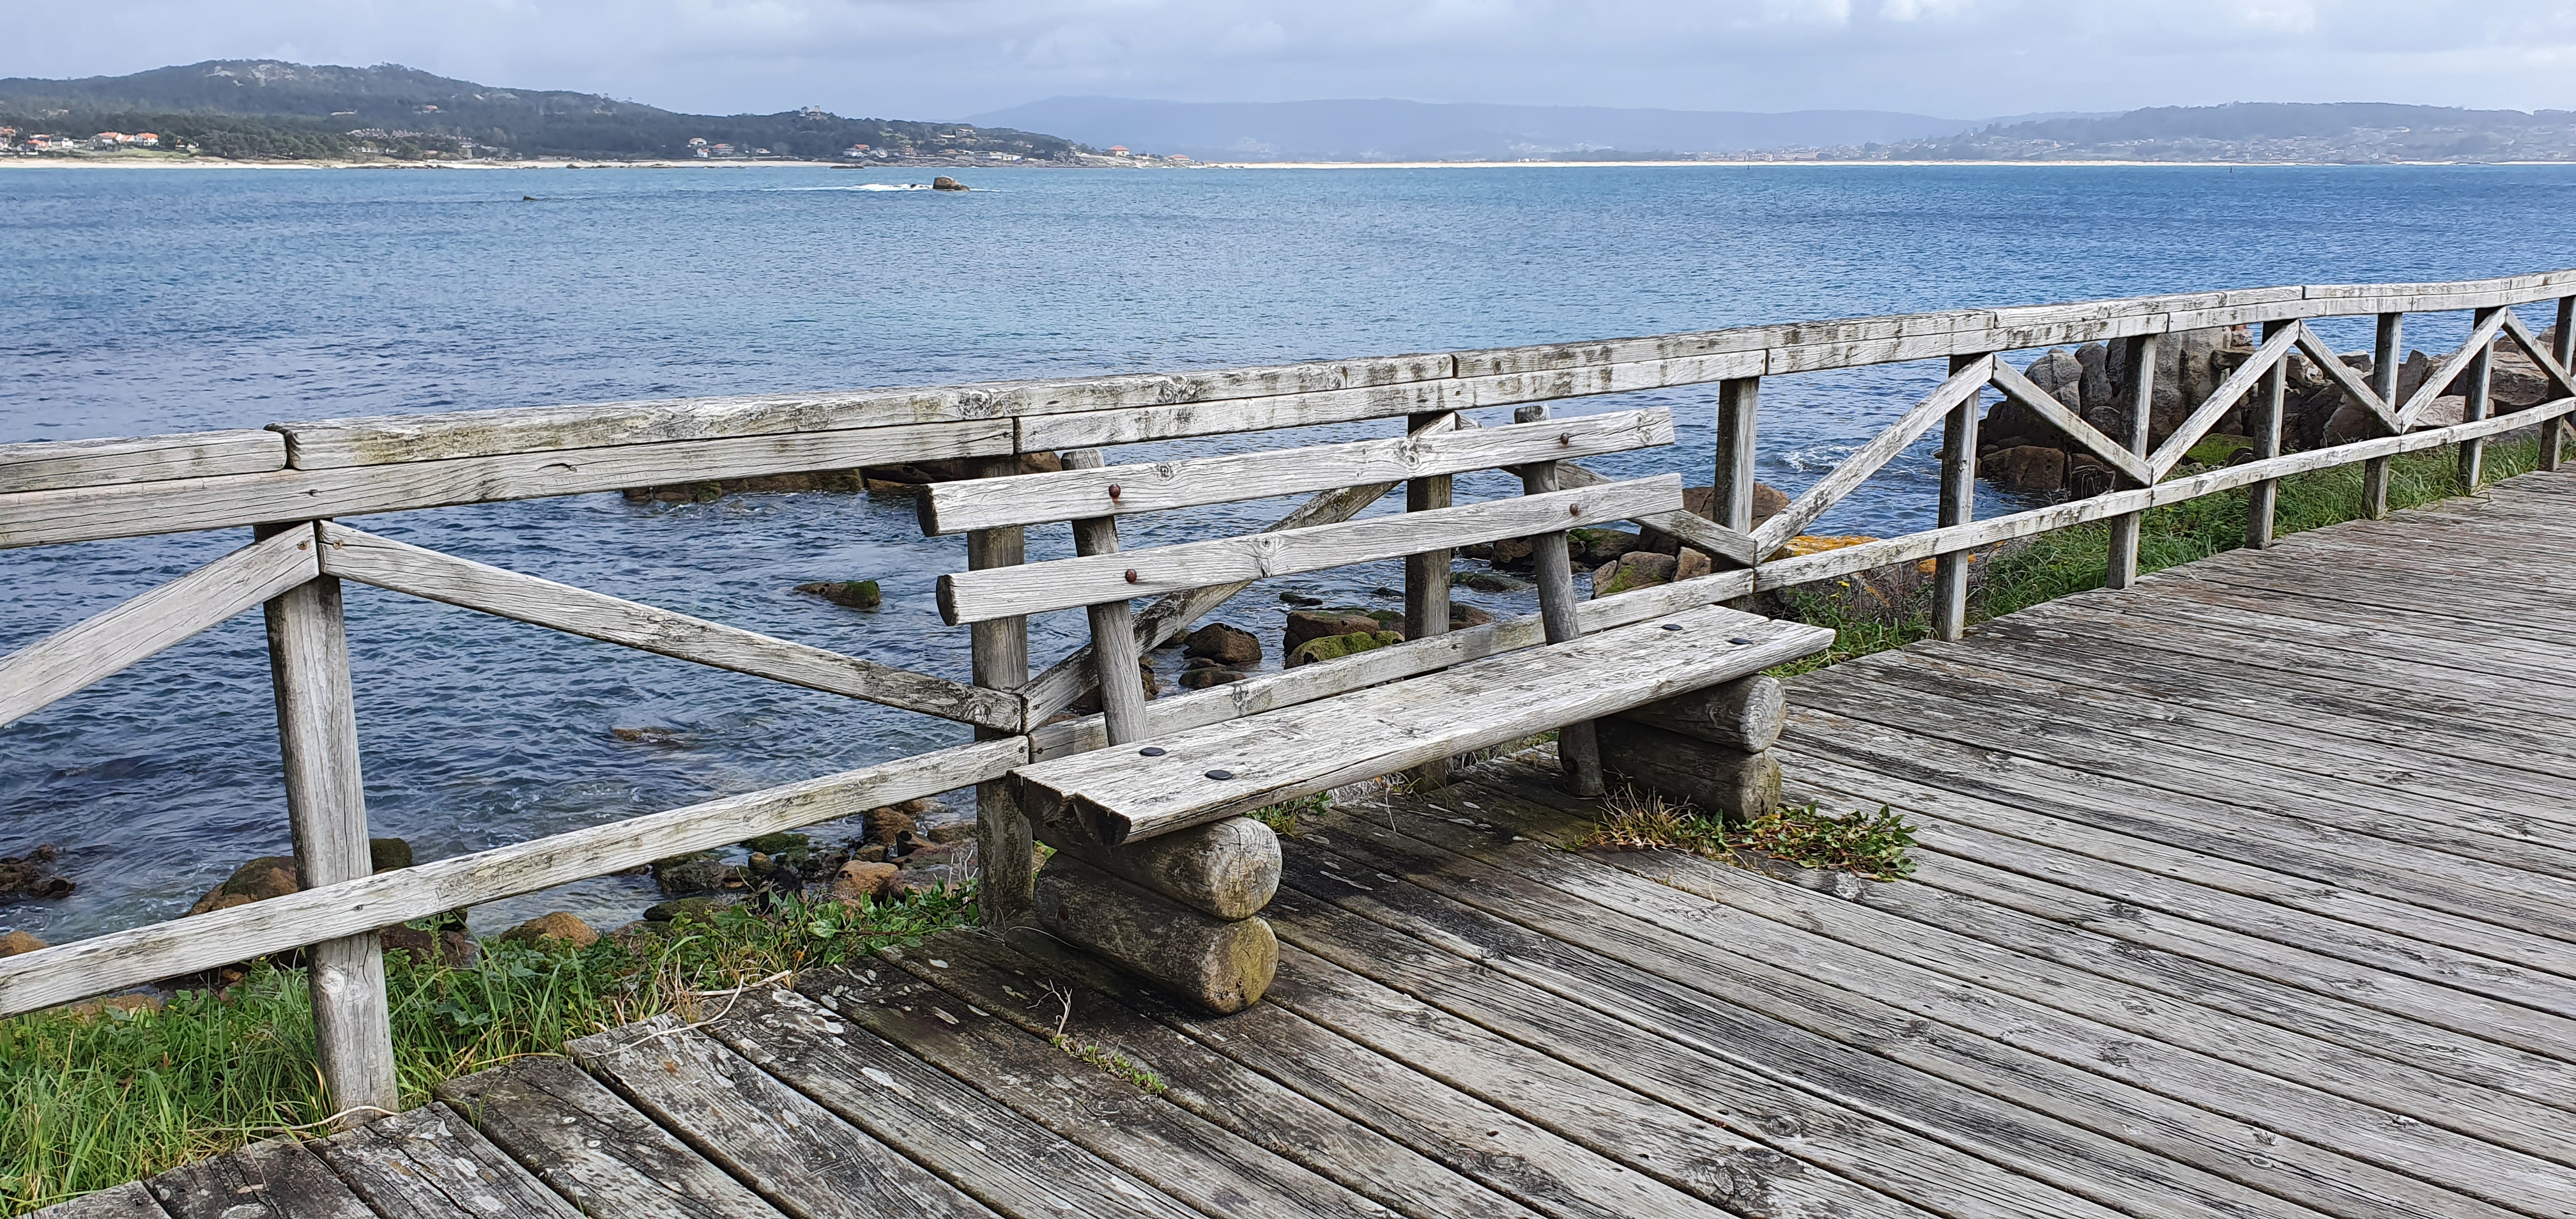 Wooden bench on a boardwalk by the sea